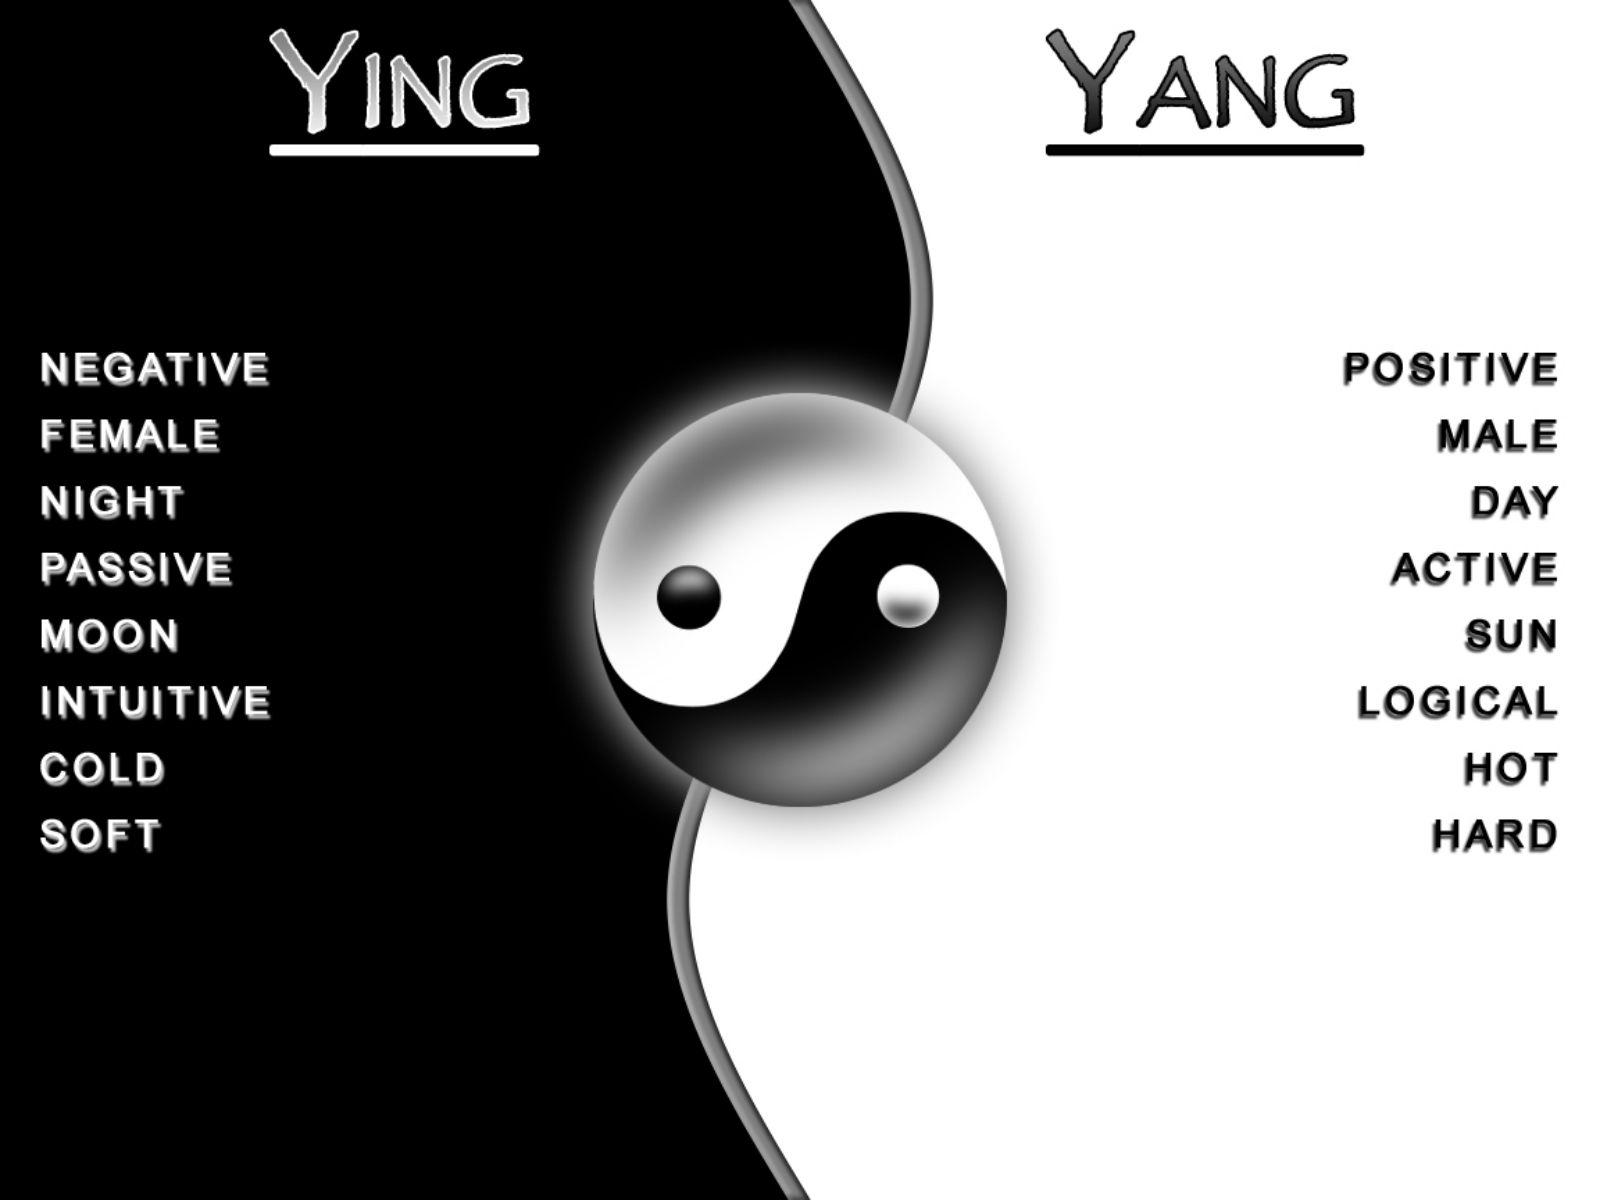 Yin yang iphone wallpaper tumblr - Yin Yang As An Association With Right Left Brain And Female Male